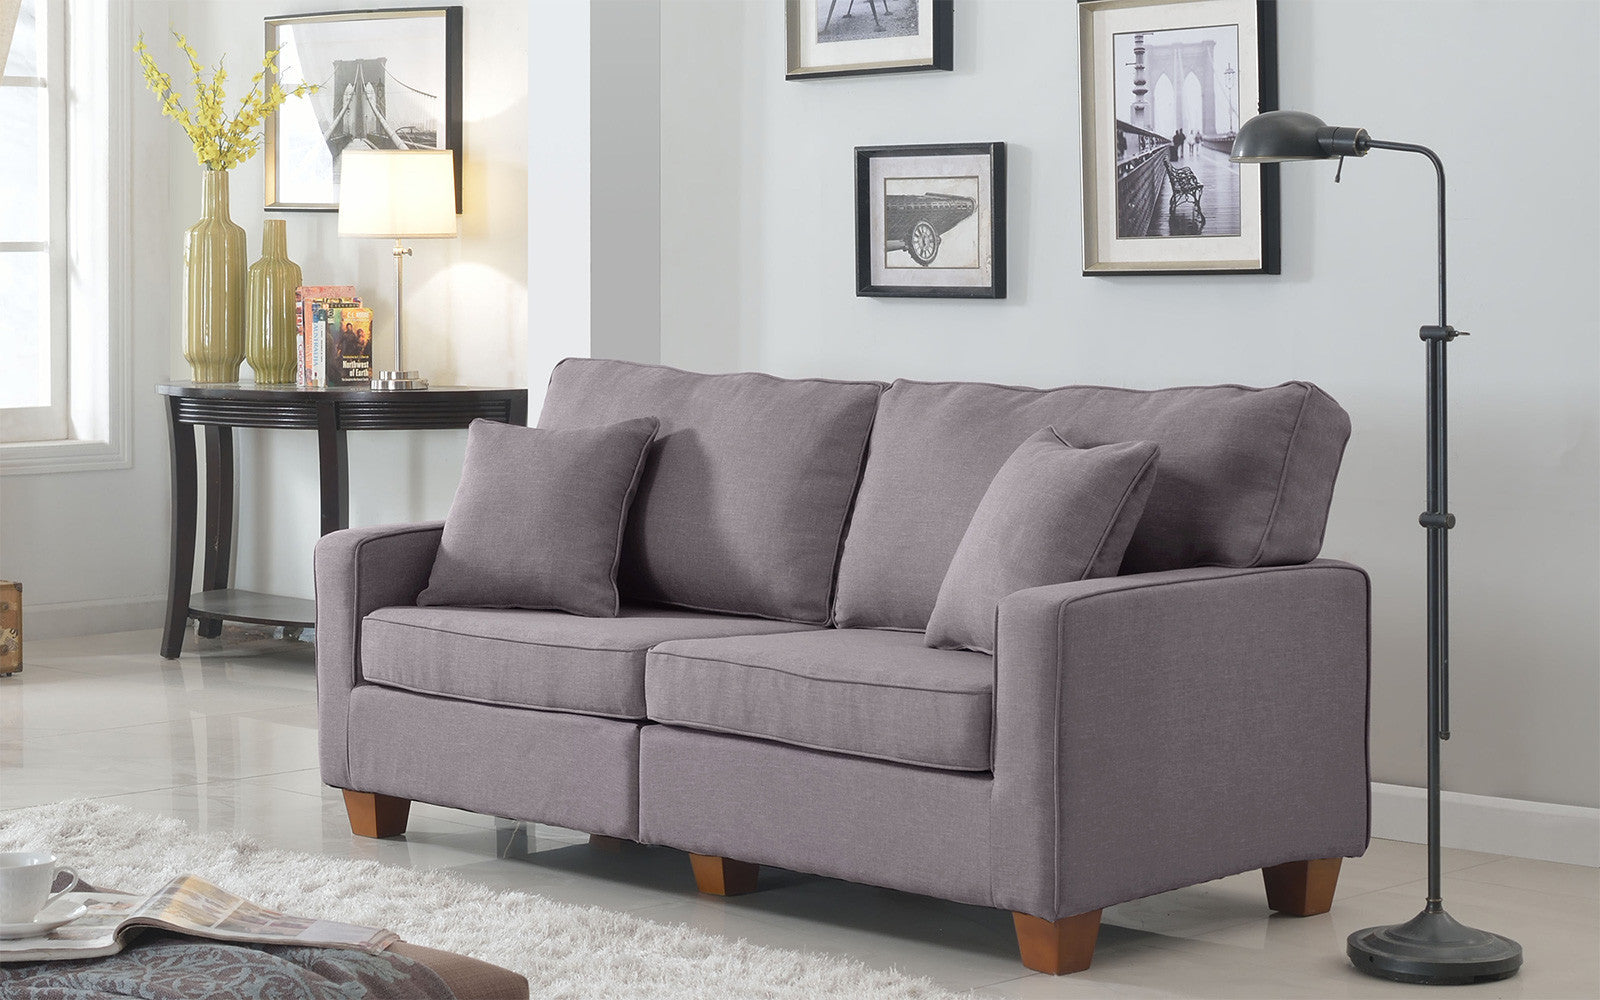 fabric wingback by tufted loveseat knight product christopher button adrianna home garden